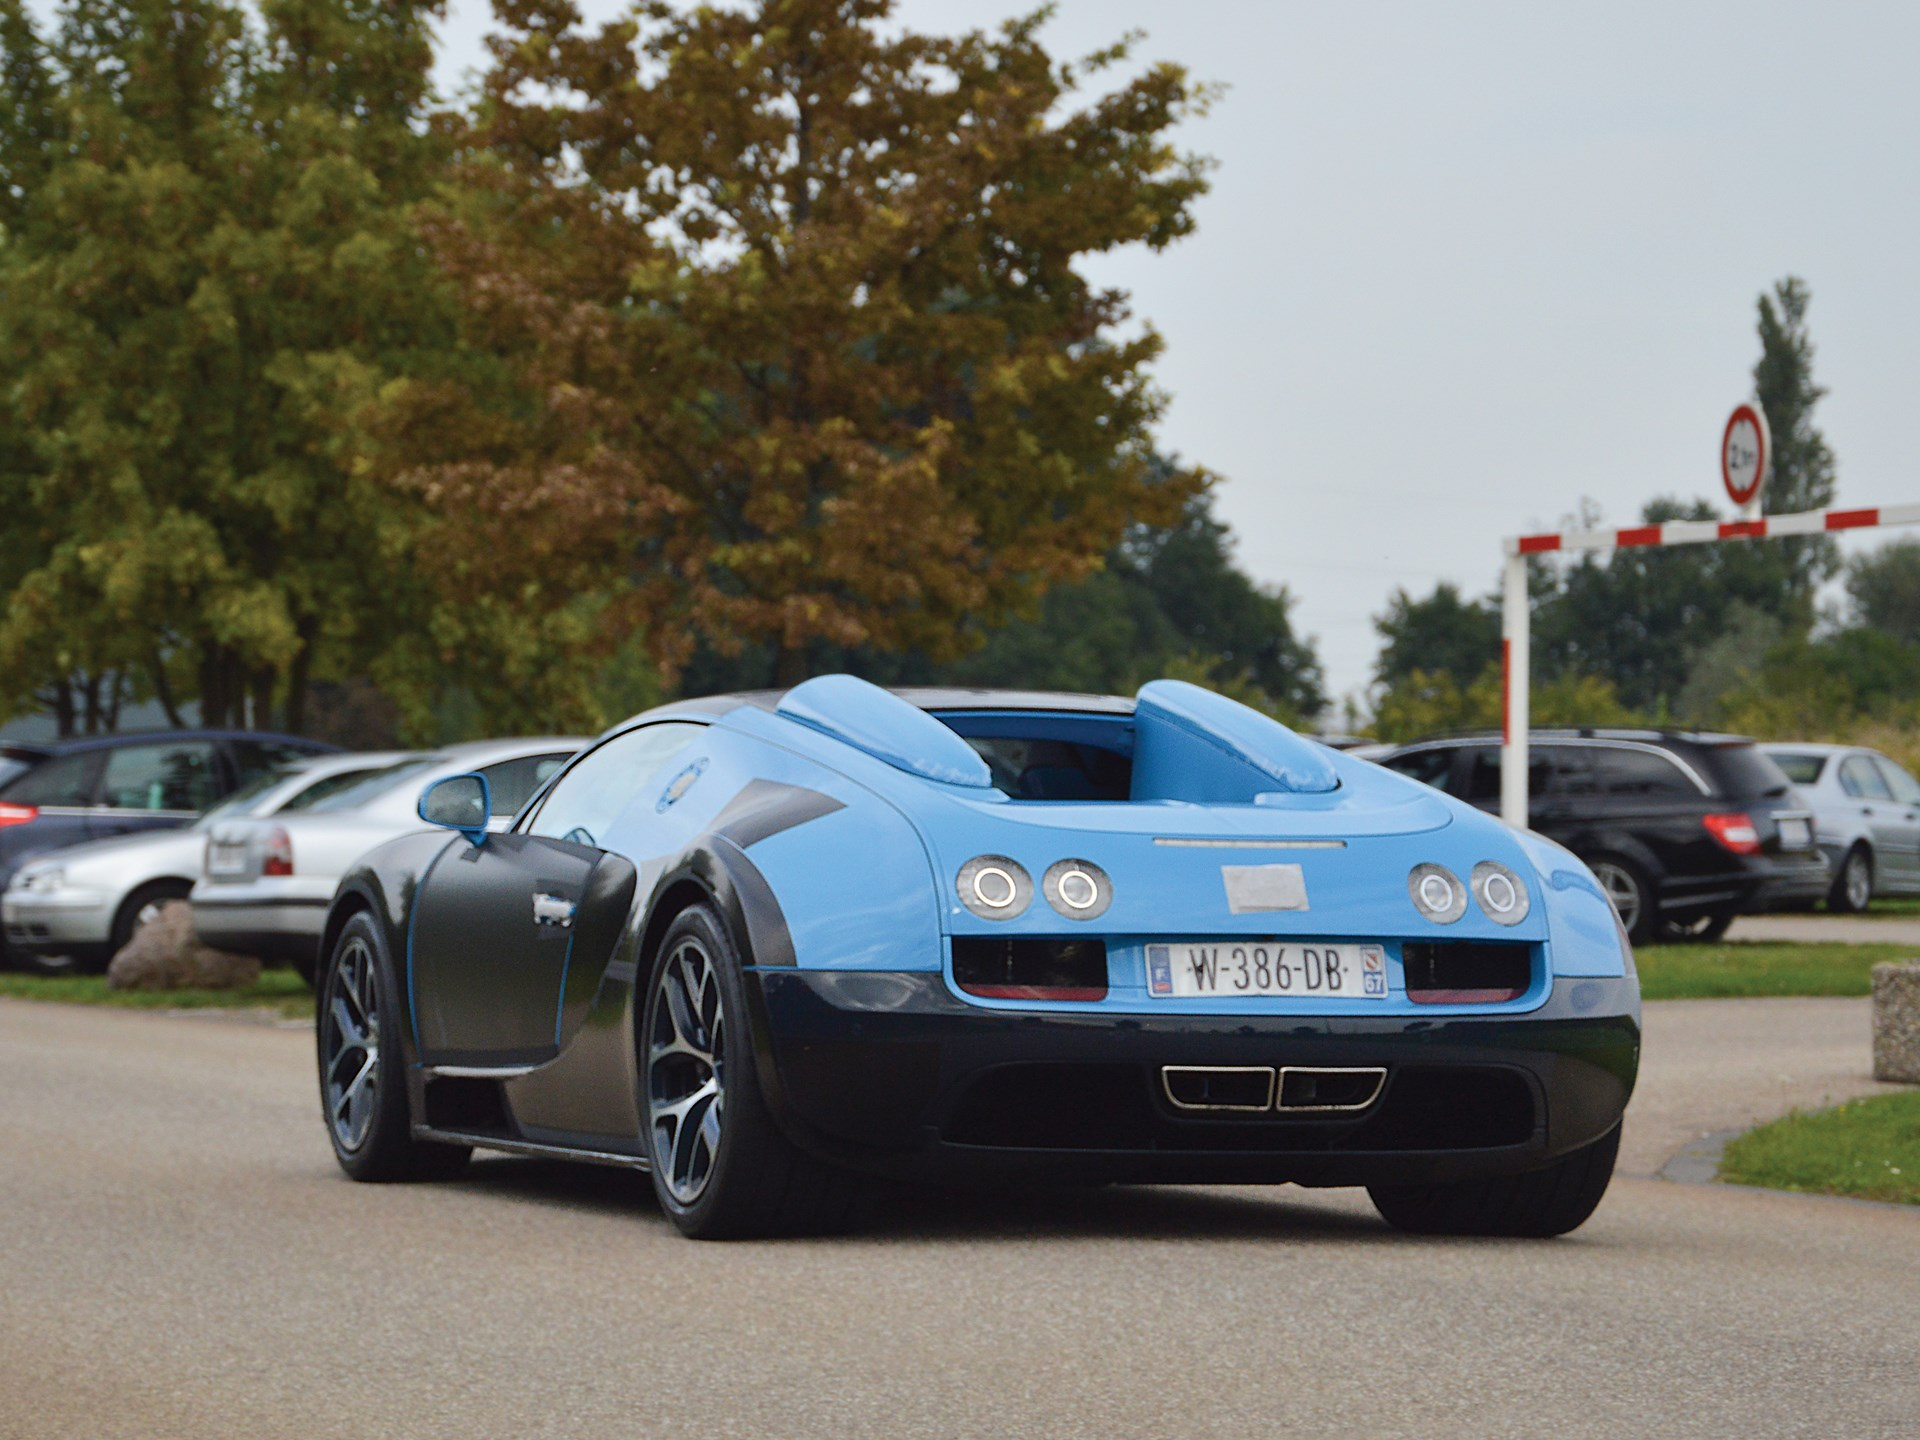 The Veyron Vitesse undergoing testing near the Bugatti factory in Molsheim, France.